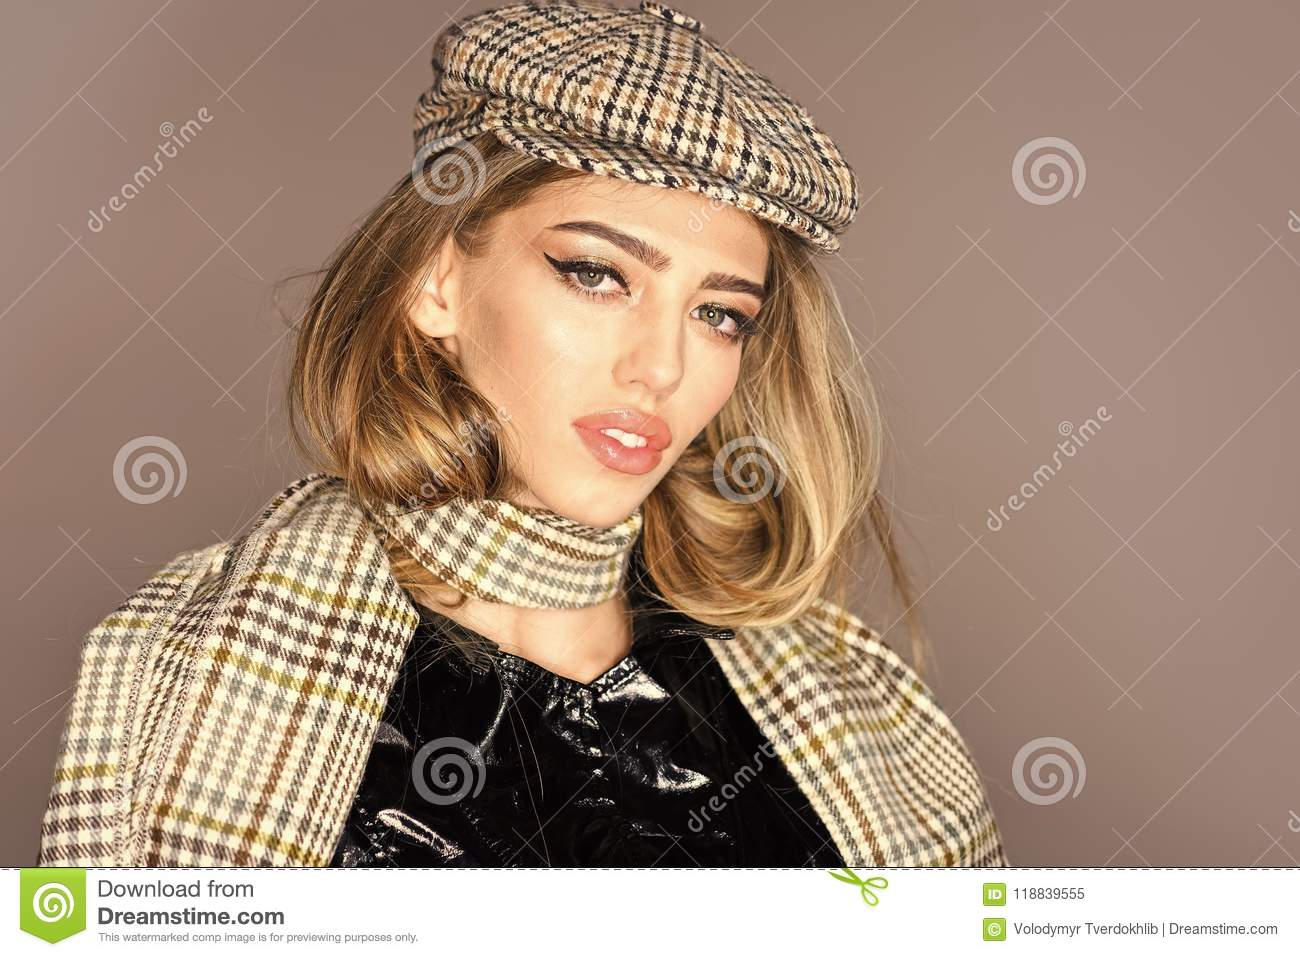 047b1ea781b Cheerful girl in autumn clothes. Woman on calm face with make up with  checkered accessories. Girl with long hair wears plaid kepi